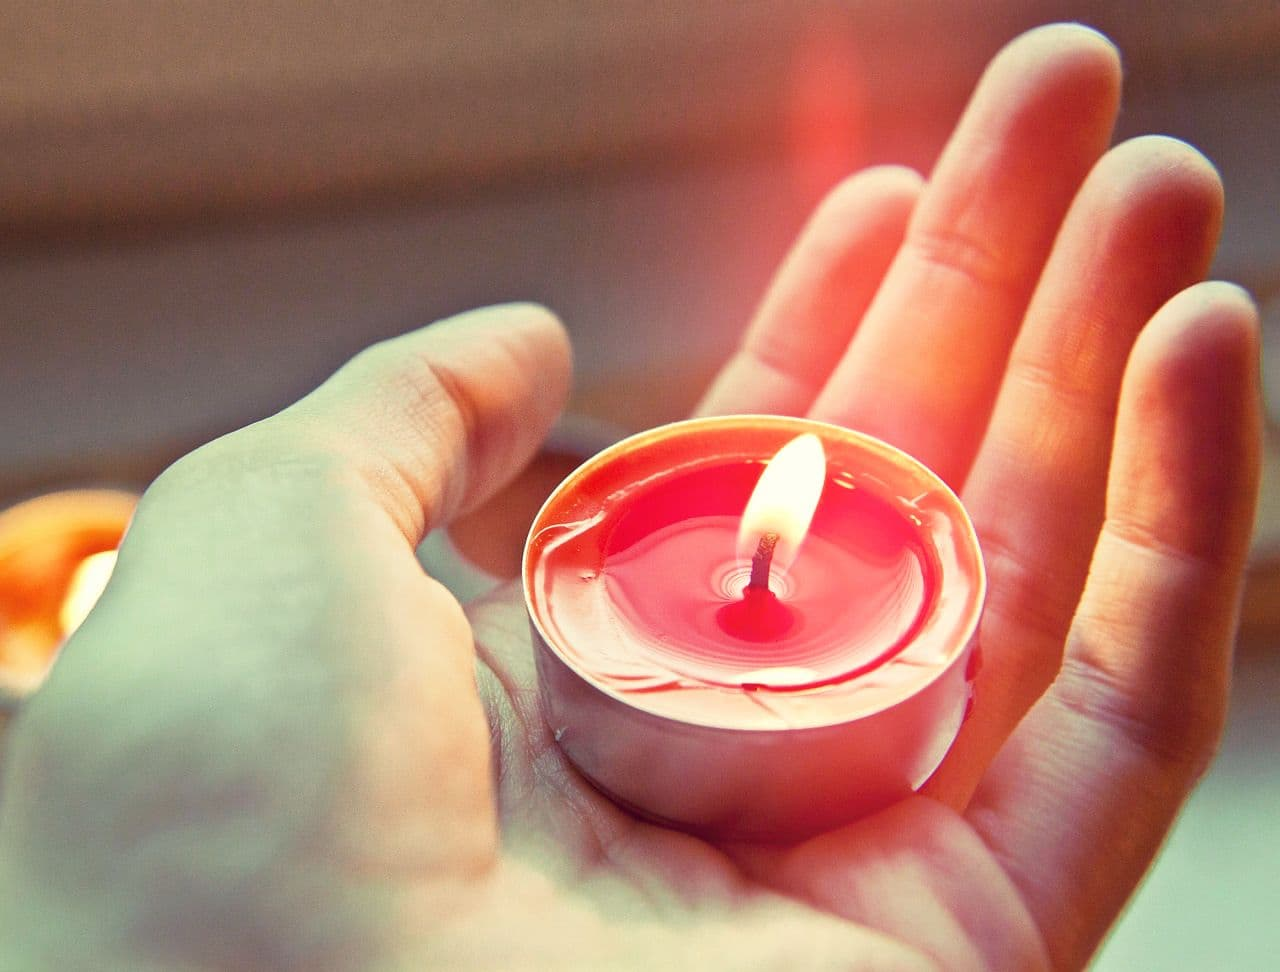 Image of a woman holding a candle doing a ritual